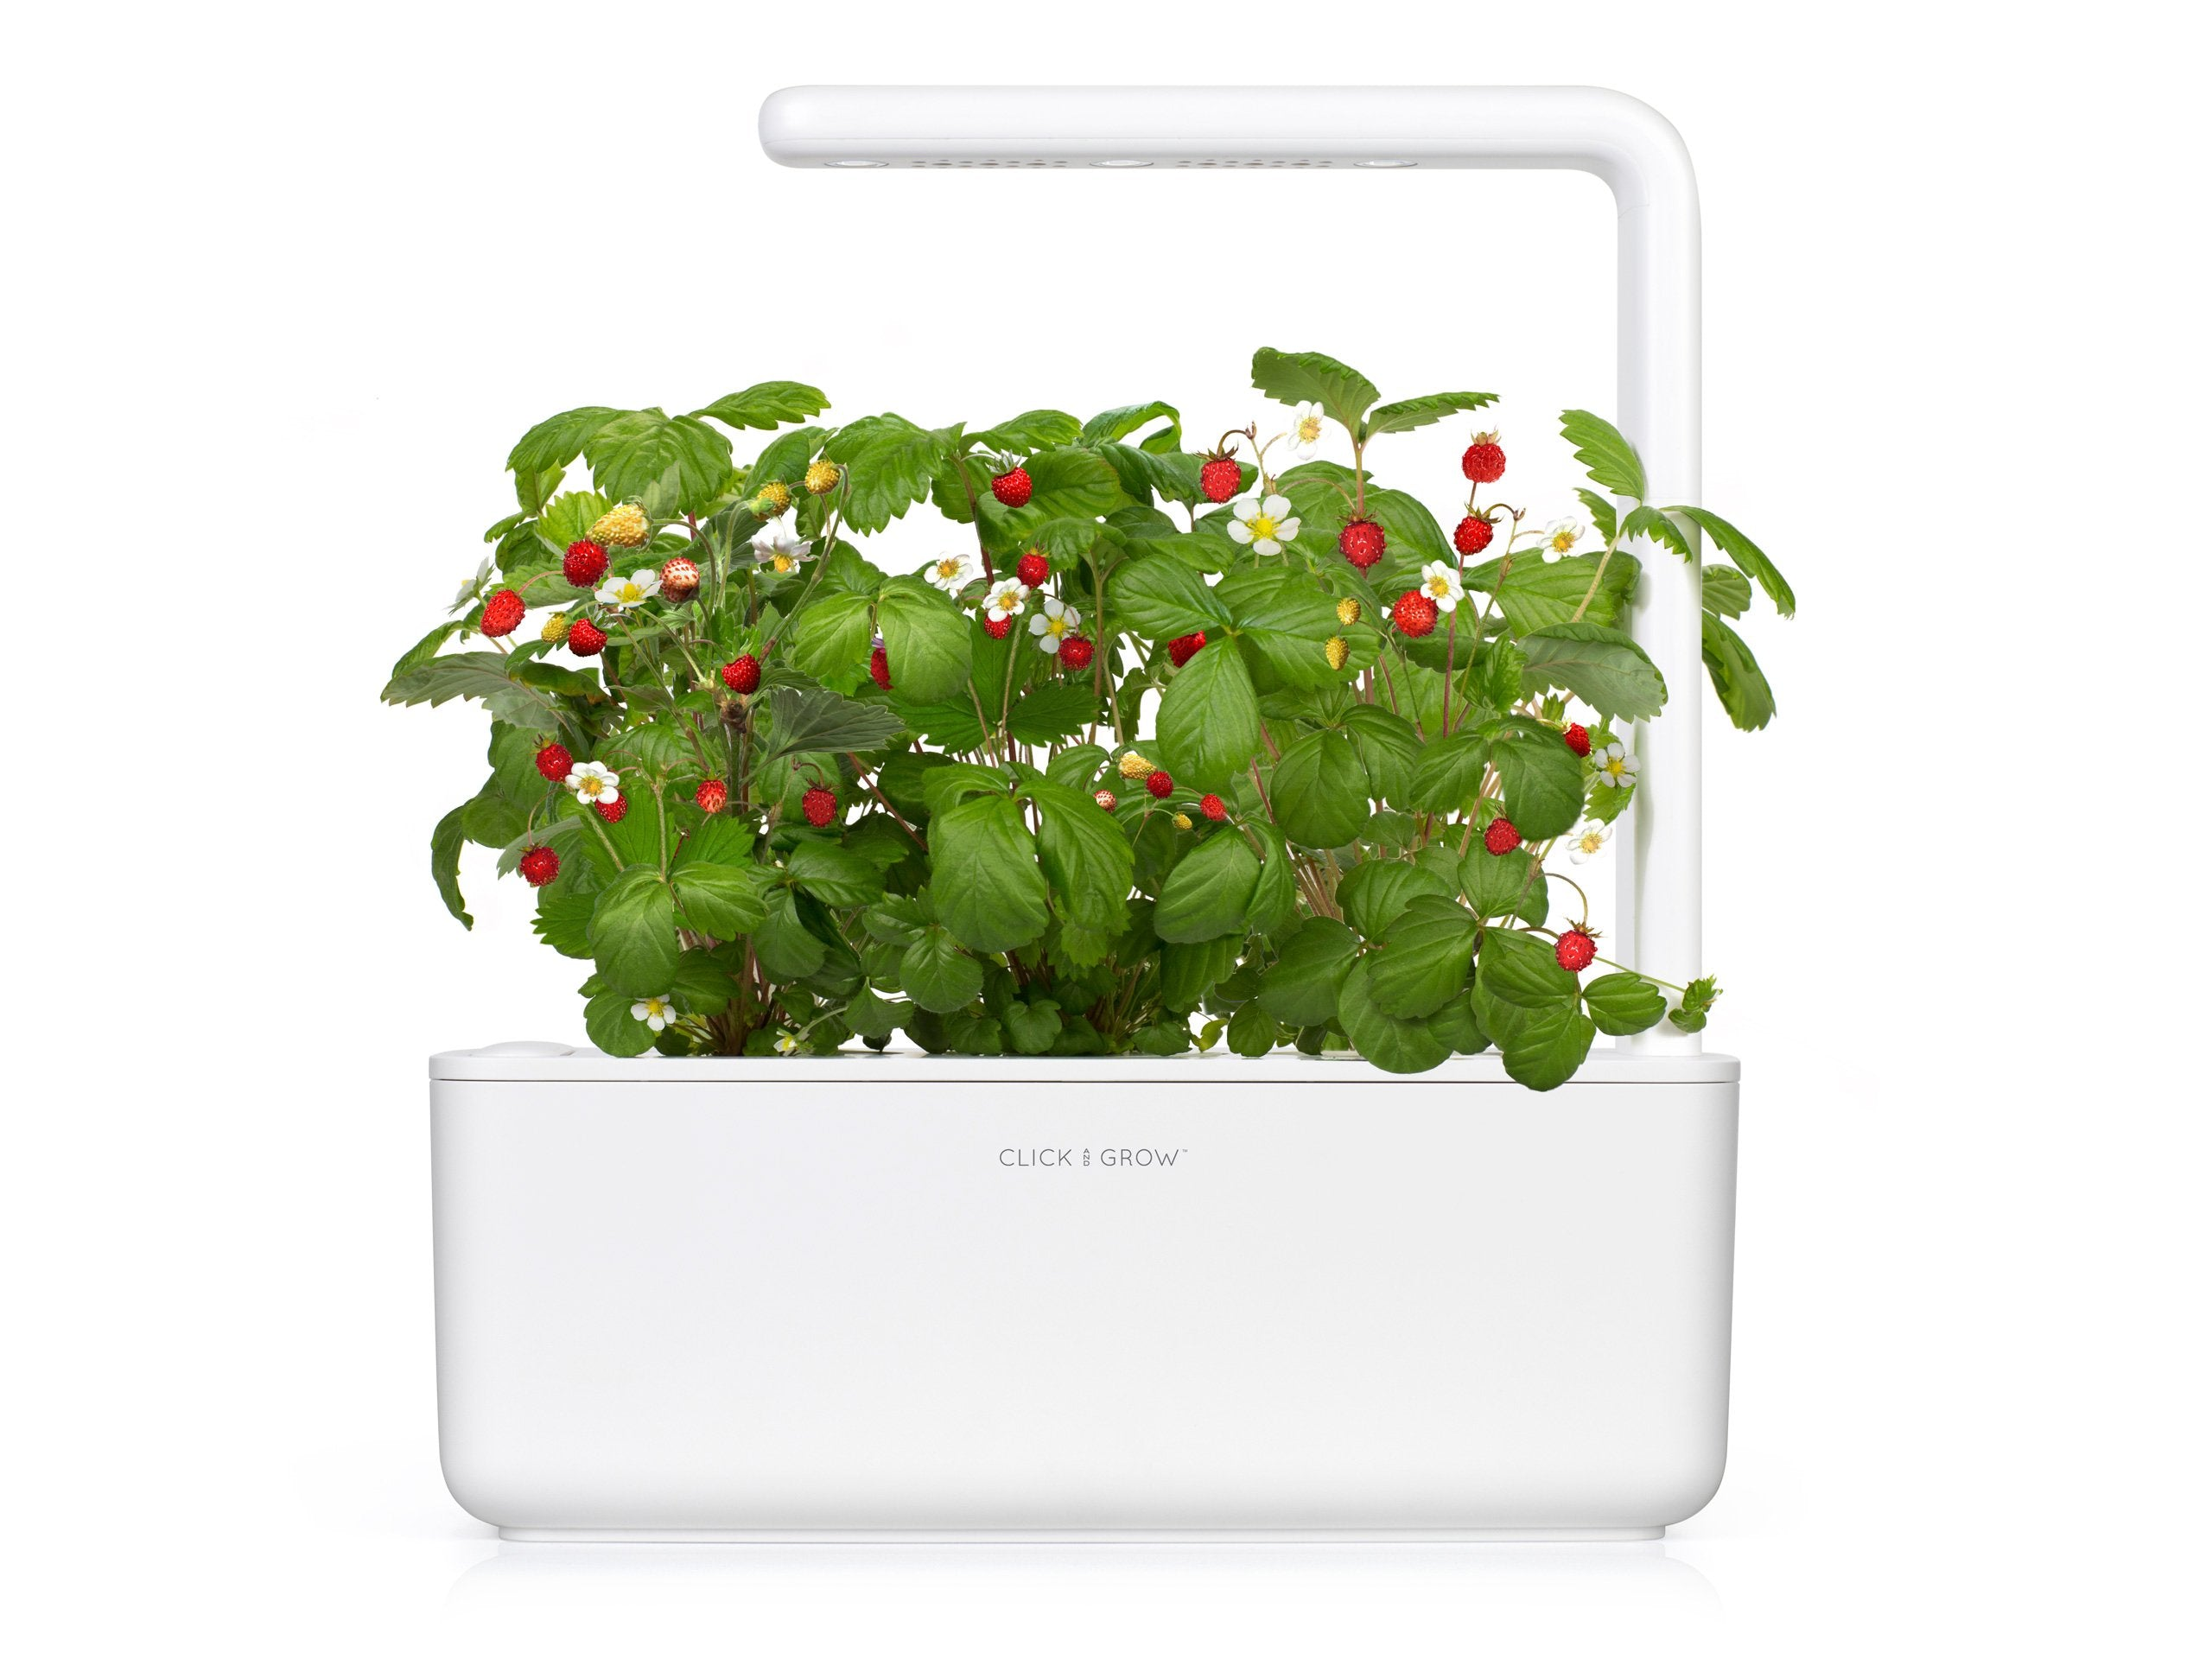 Smart Garden Click Grow Enlarged Version Electricity Usually Comes To Our Homes From The Power 3